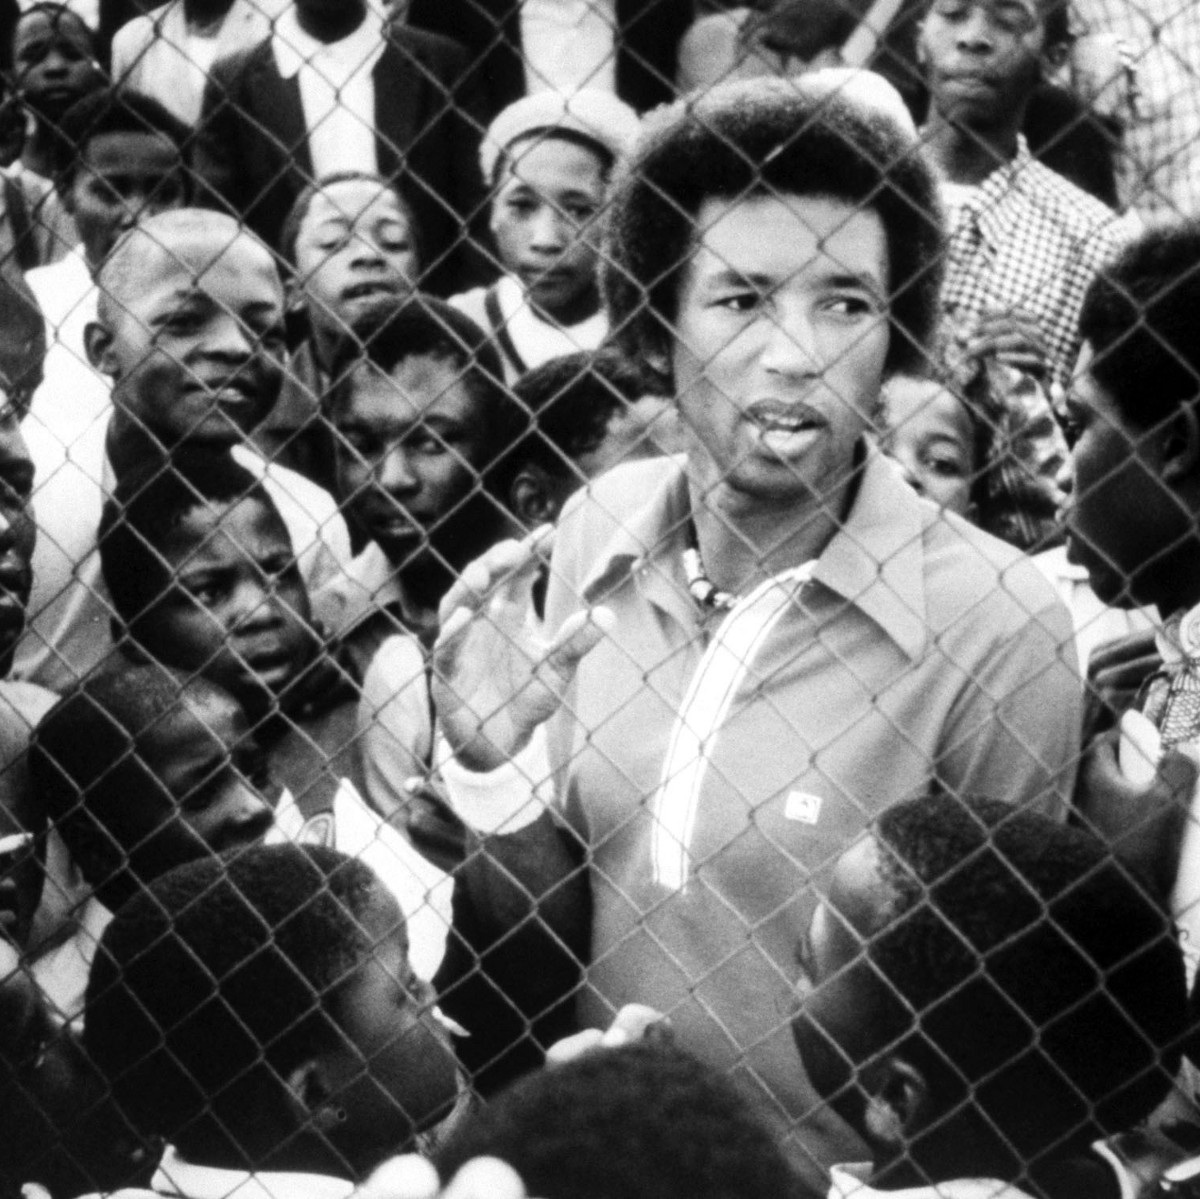 When Arthur Ashe fought to play tennis in apartheid South Africa, he faced bitter criticism